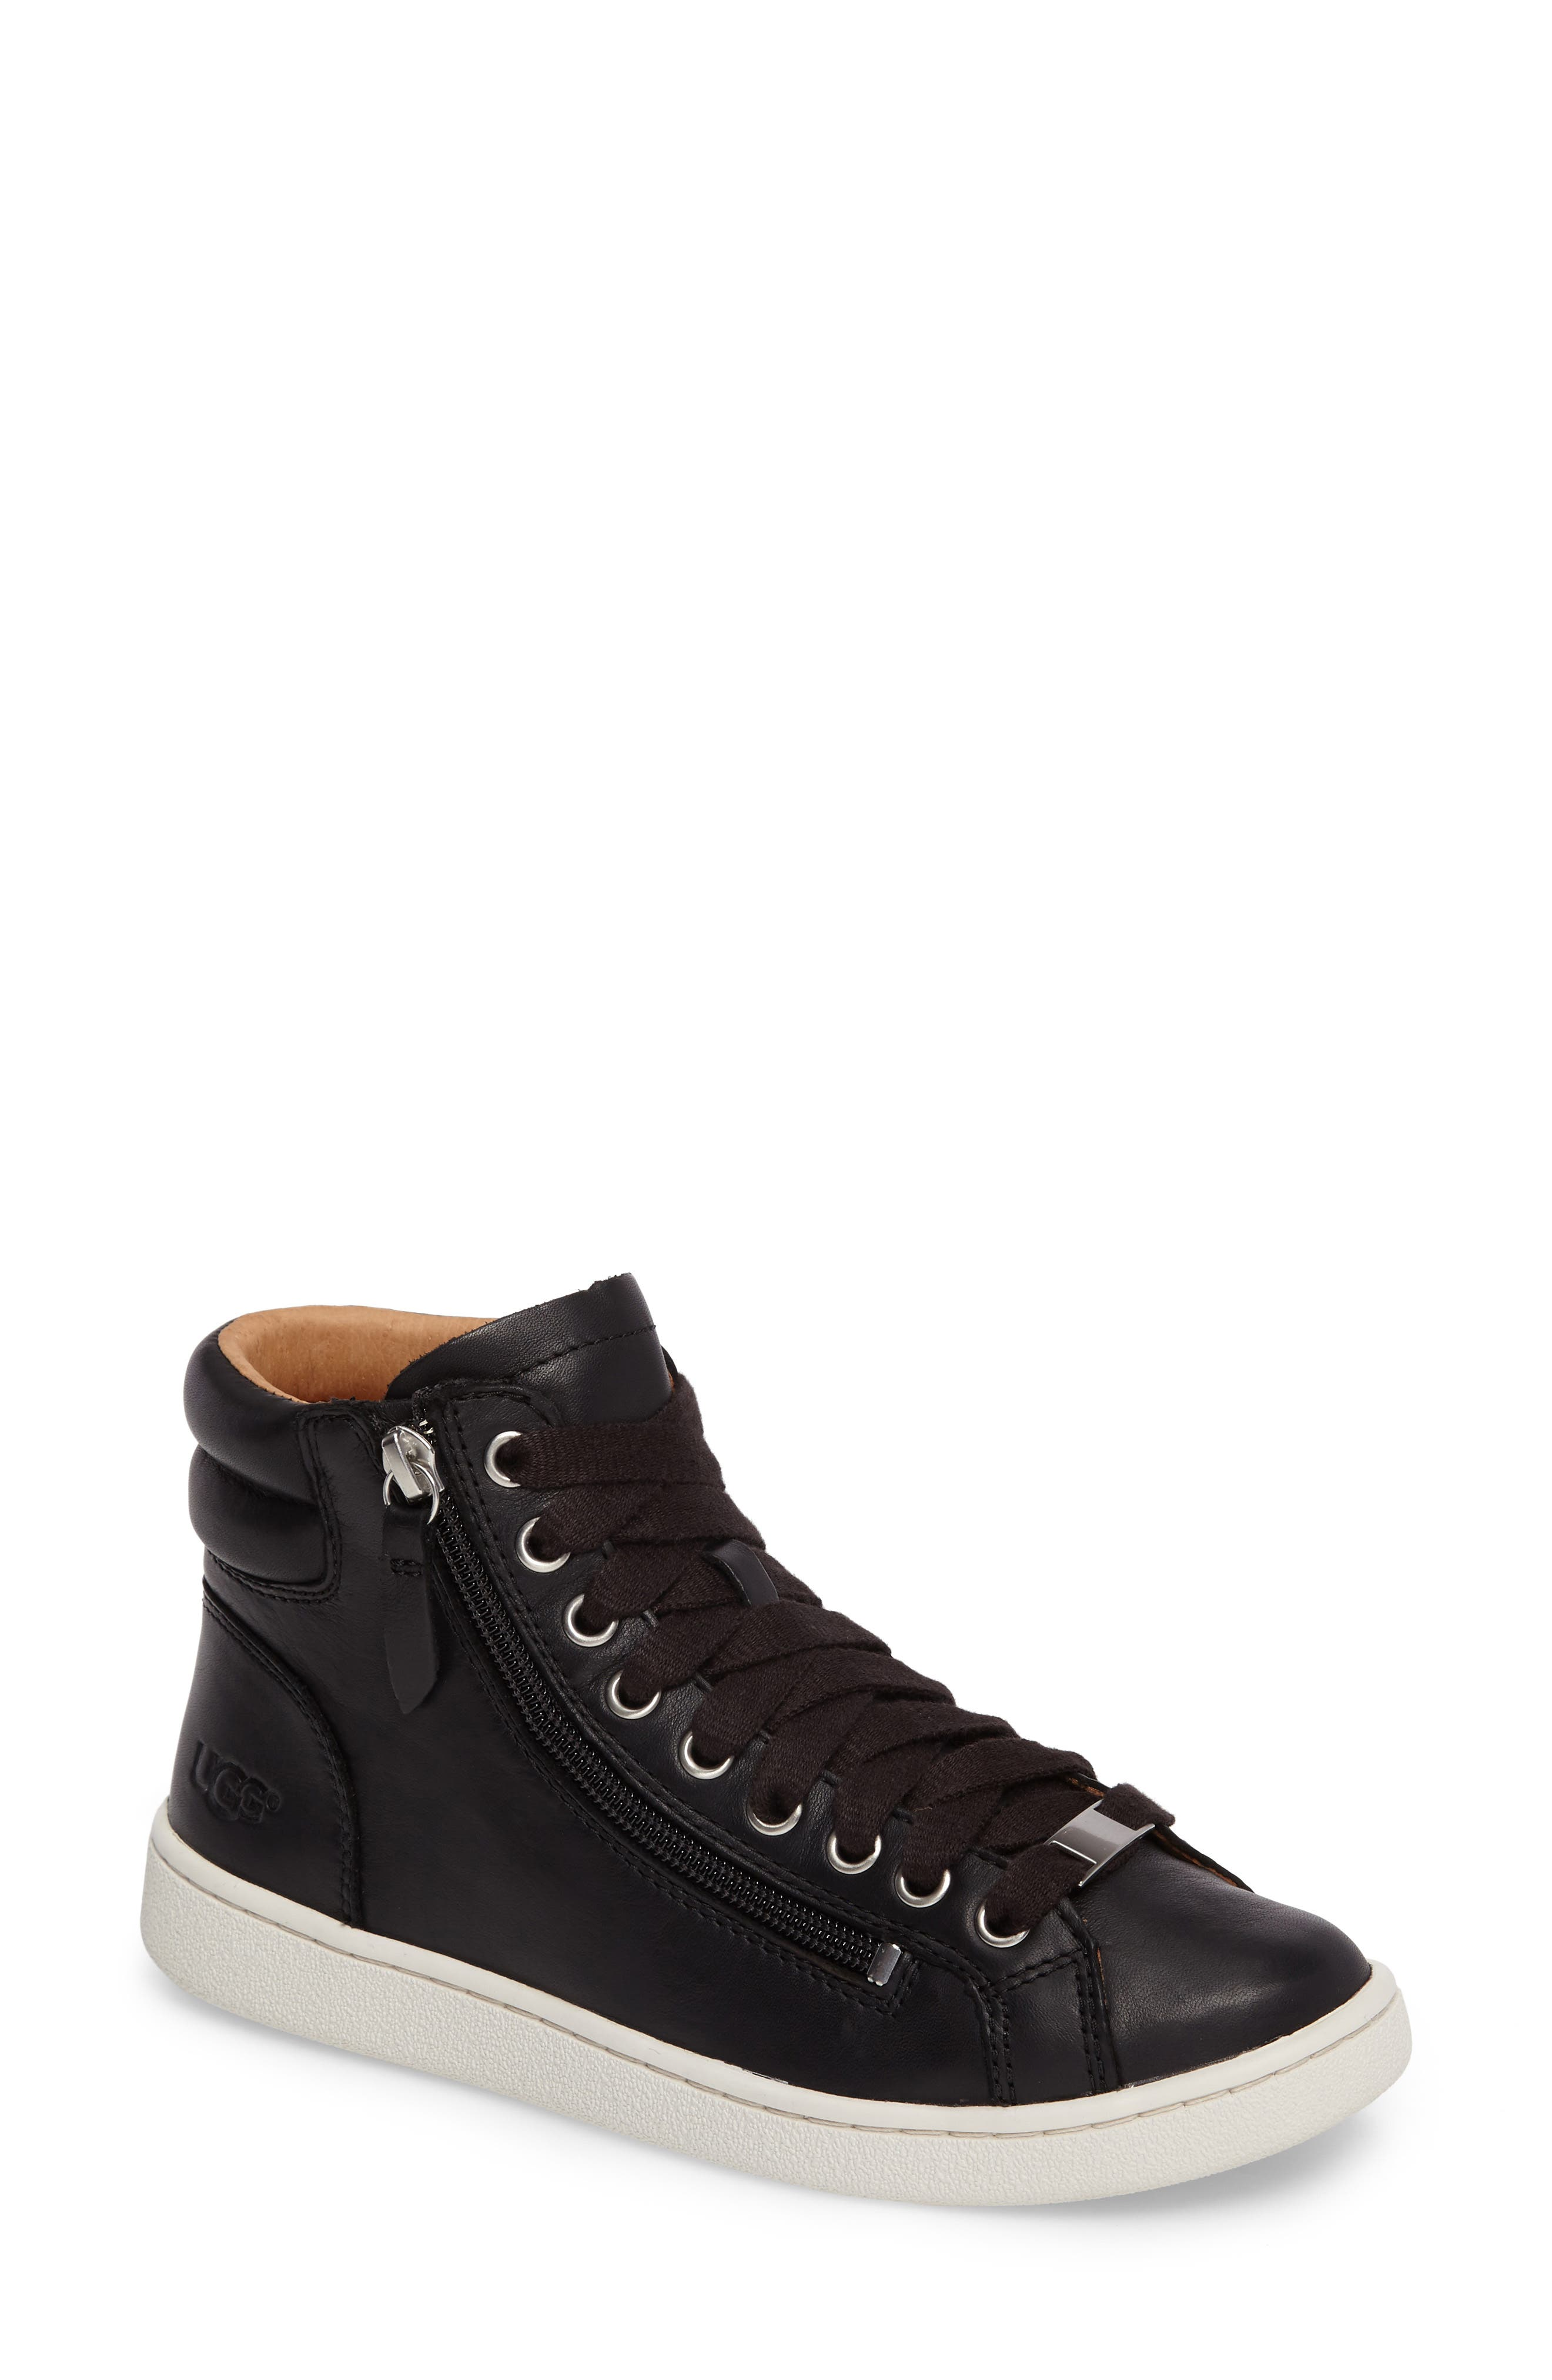 UGG Olive High Top Sneaker,                             Main thumbnail 1, color,                             BLACK LEATHER